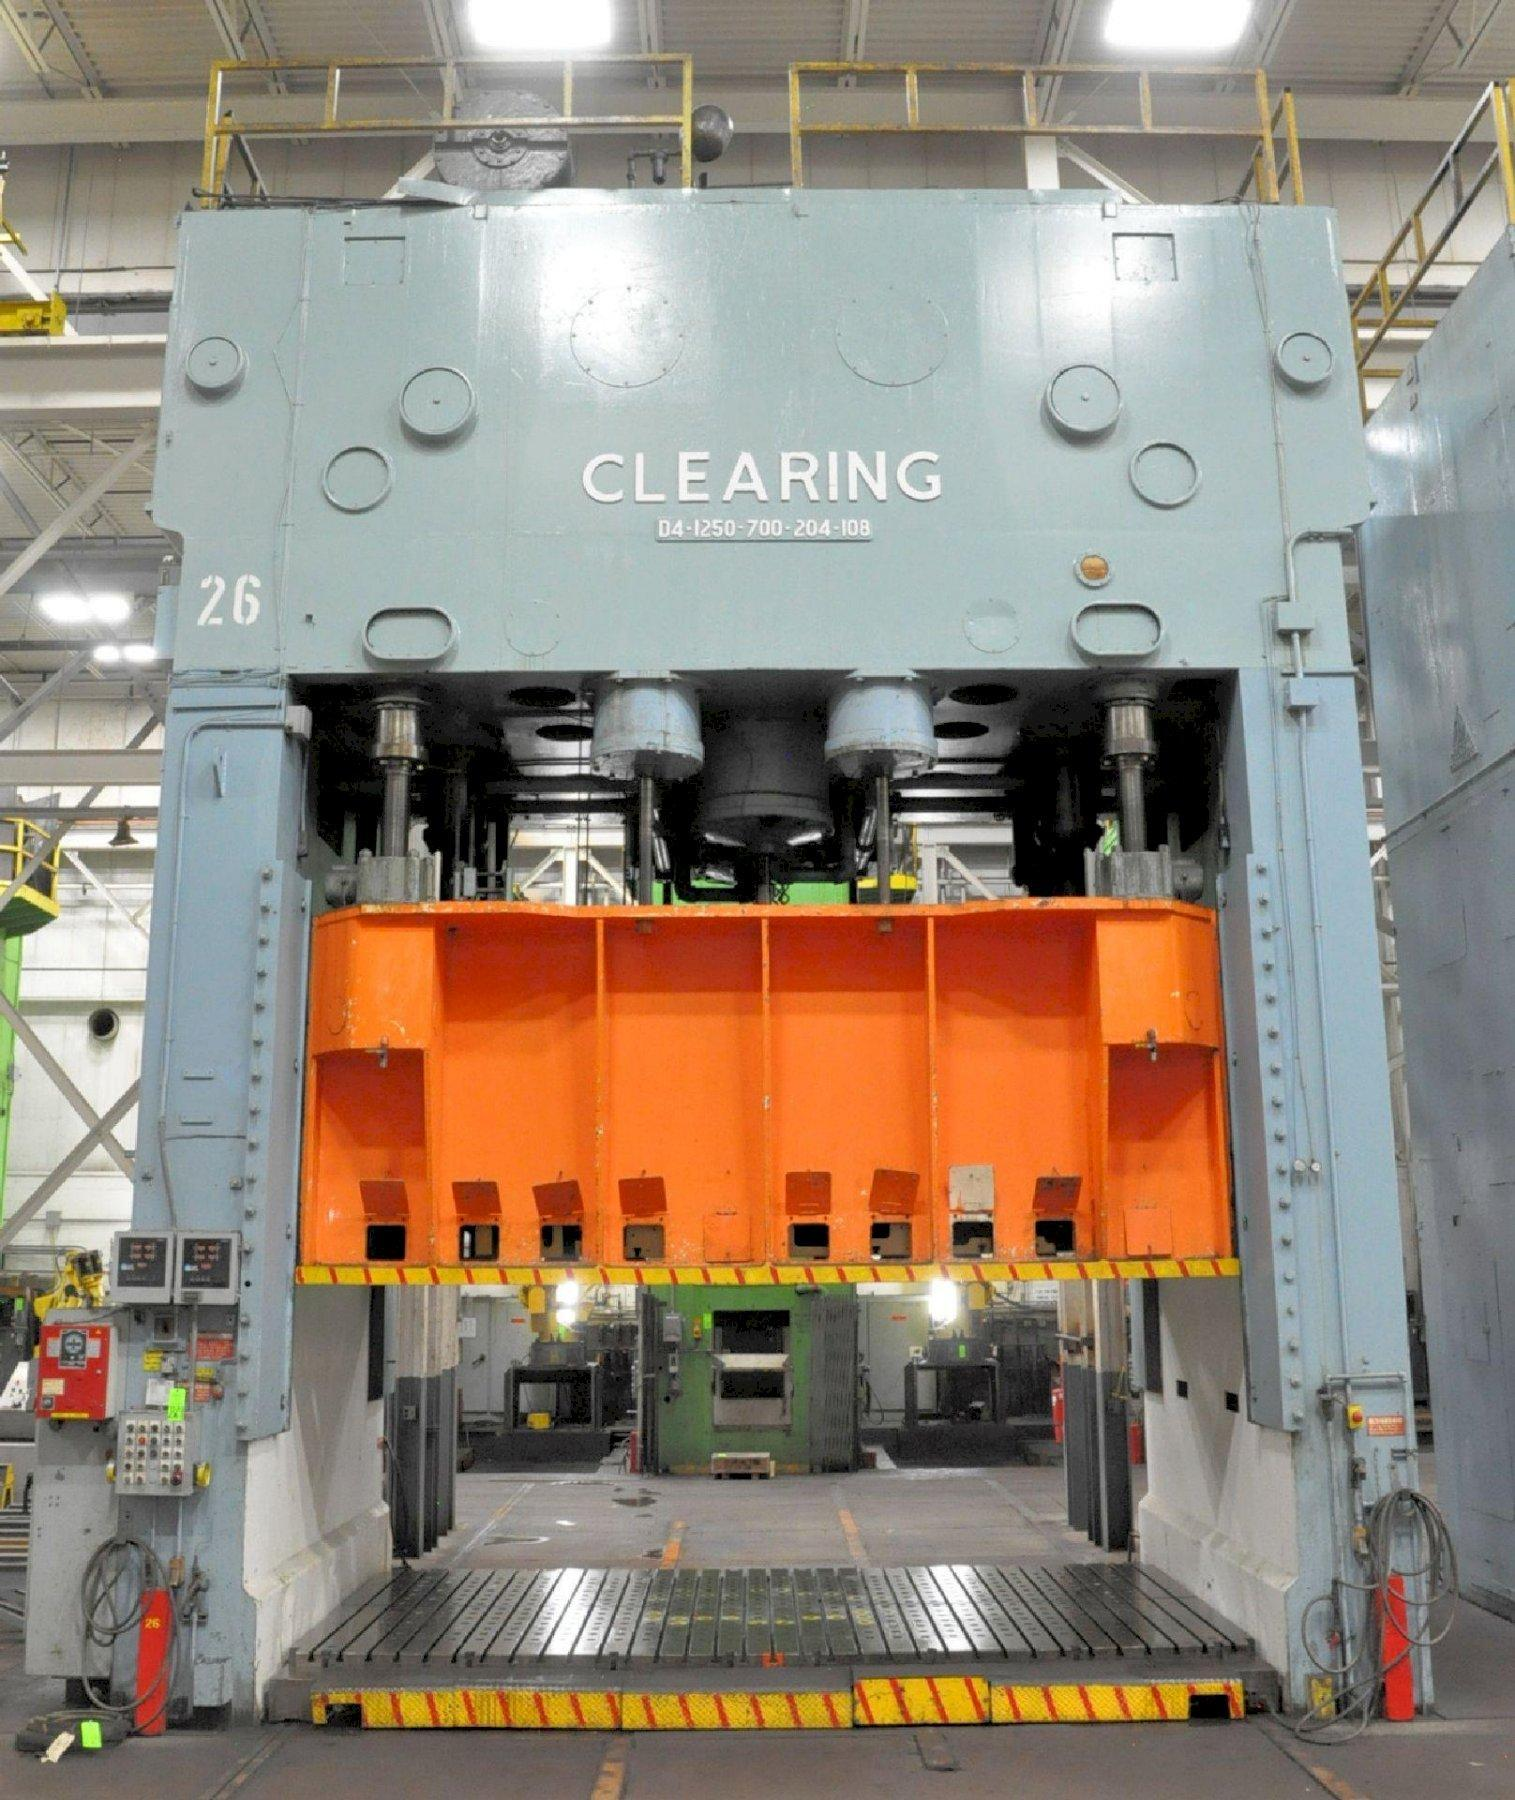 "1,950 Ton Clearing 4-Point Toggle Double Action Straight Side Press, Model D4-1250-700-204-108, 37""/26"" Stroke, 75/68"" Shut Height, 24""/24"" Adj, 204"" x 108"" Rolling Bolster, Cushion"